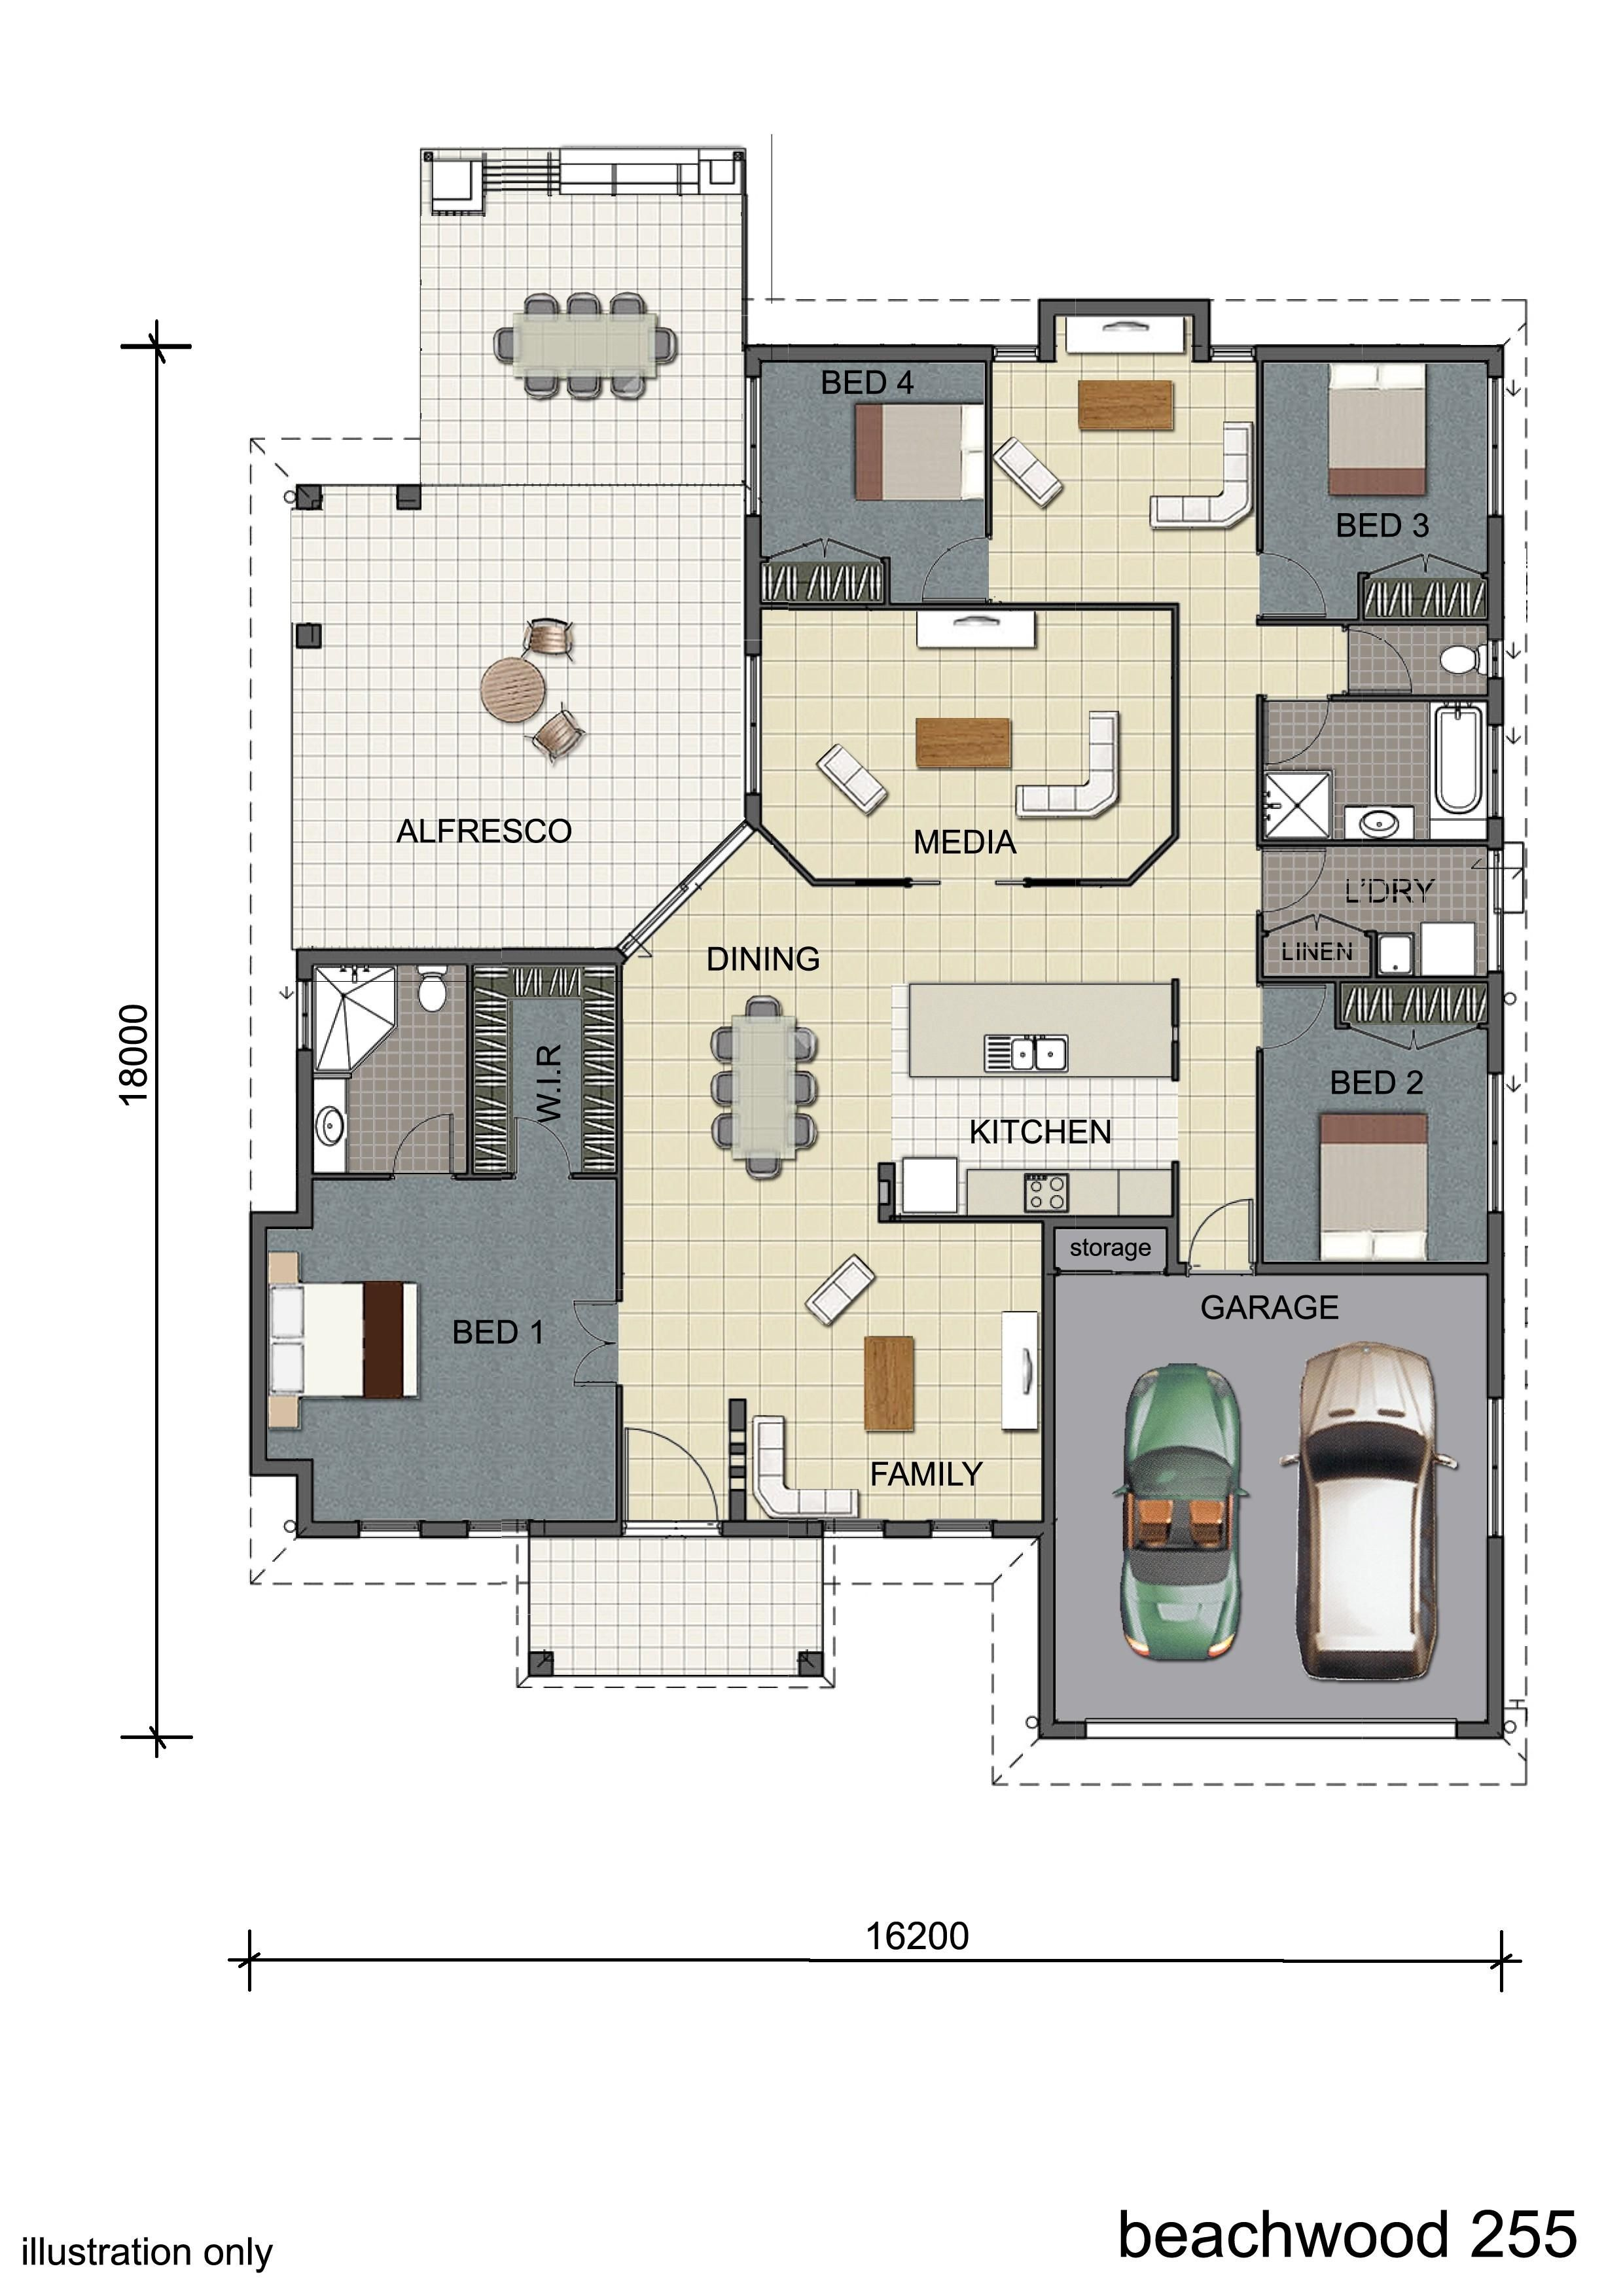 Floorplan design single storey display home design townsville queensland australia grundriss